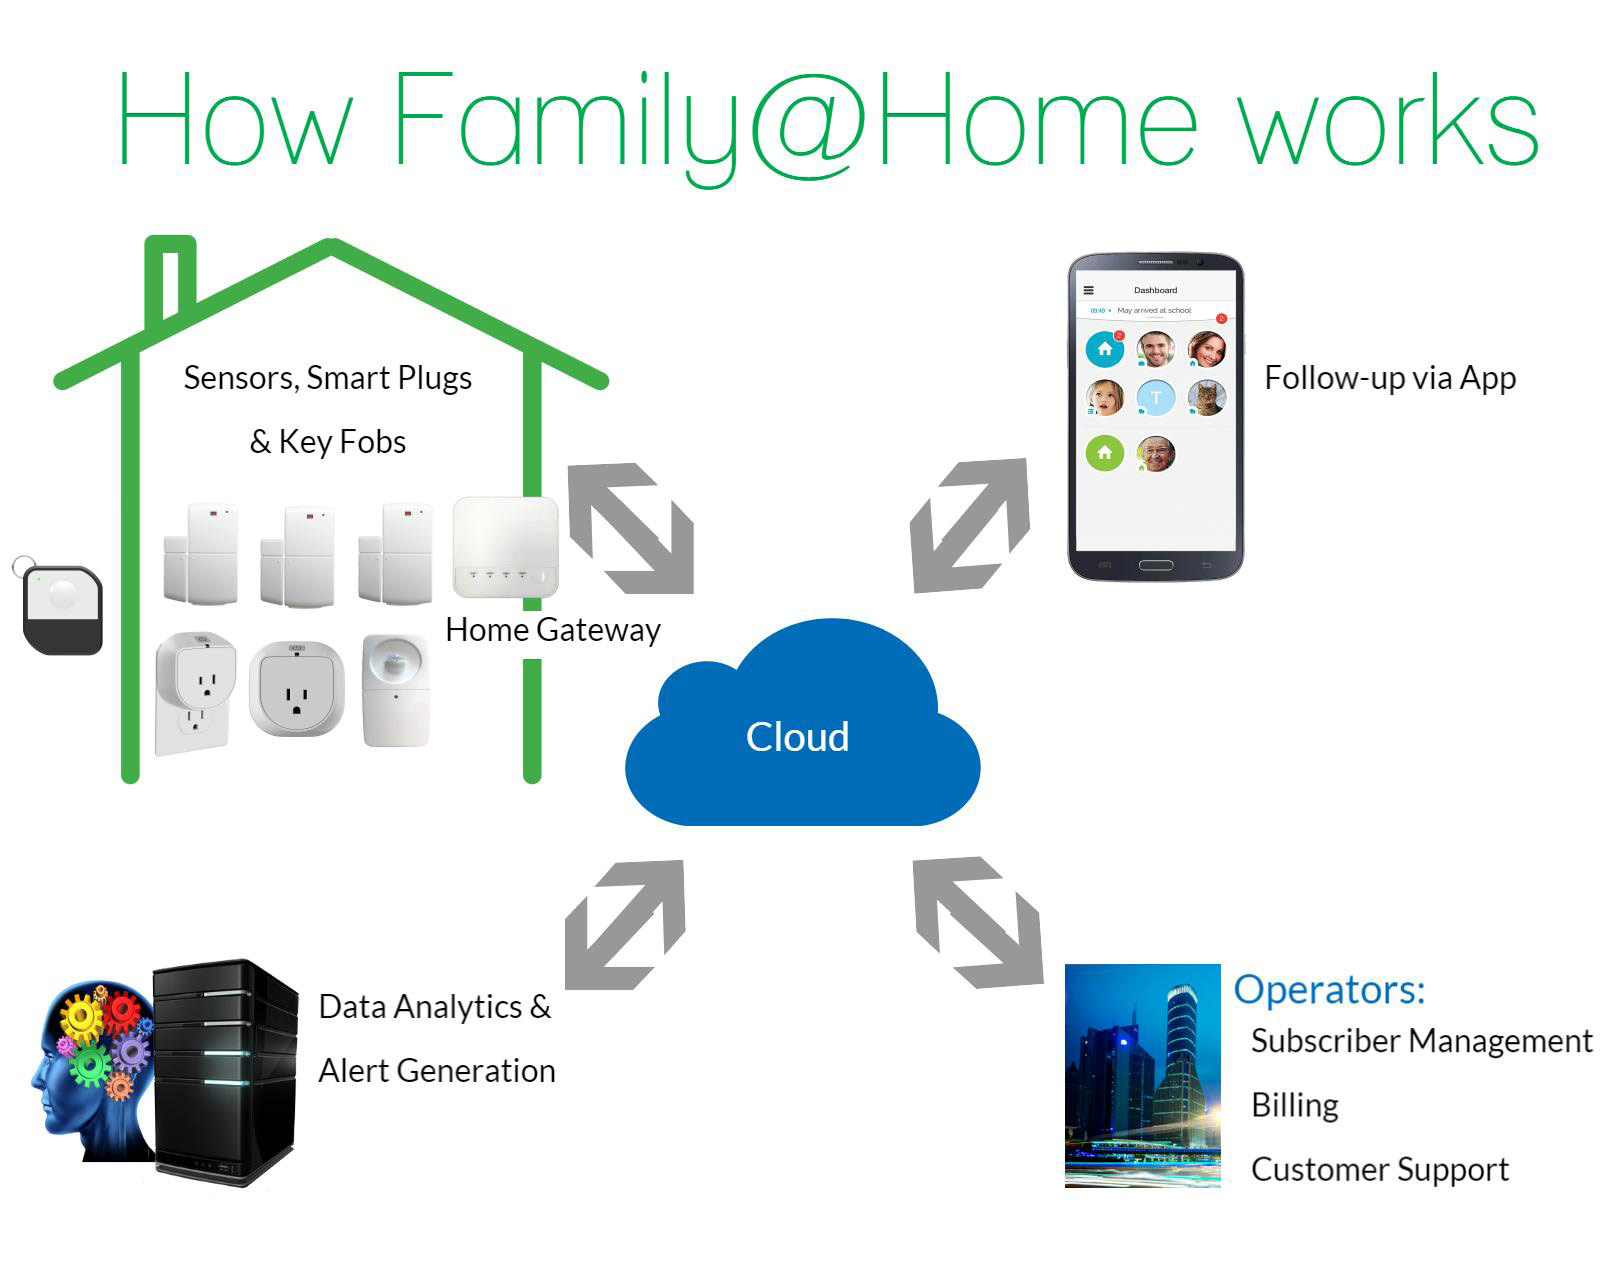 A window of opportunity for smart home service success